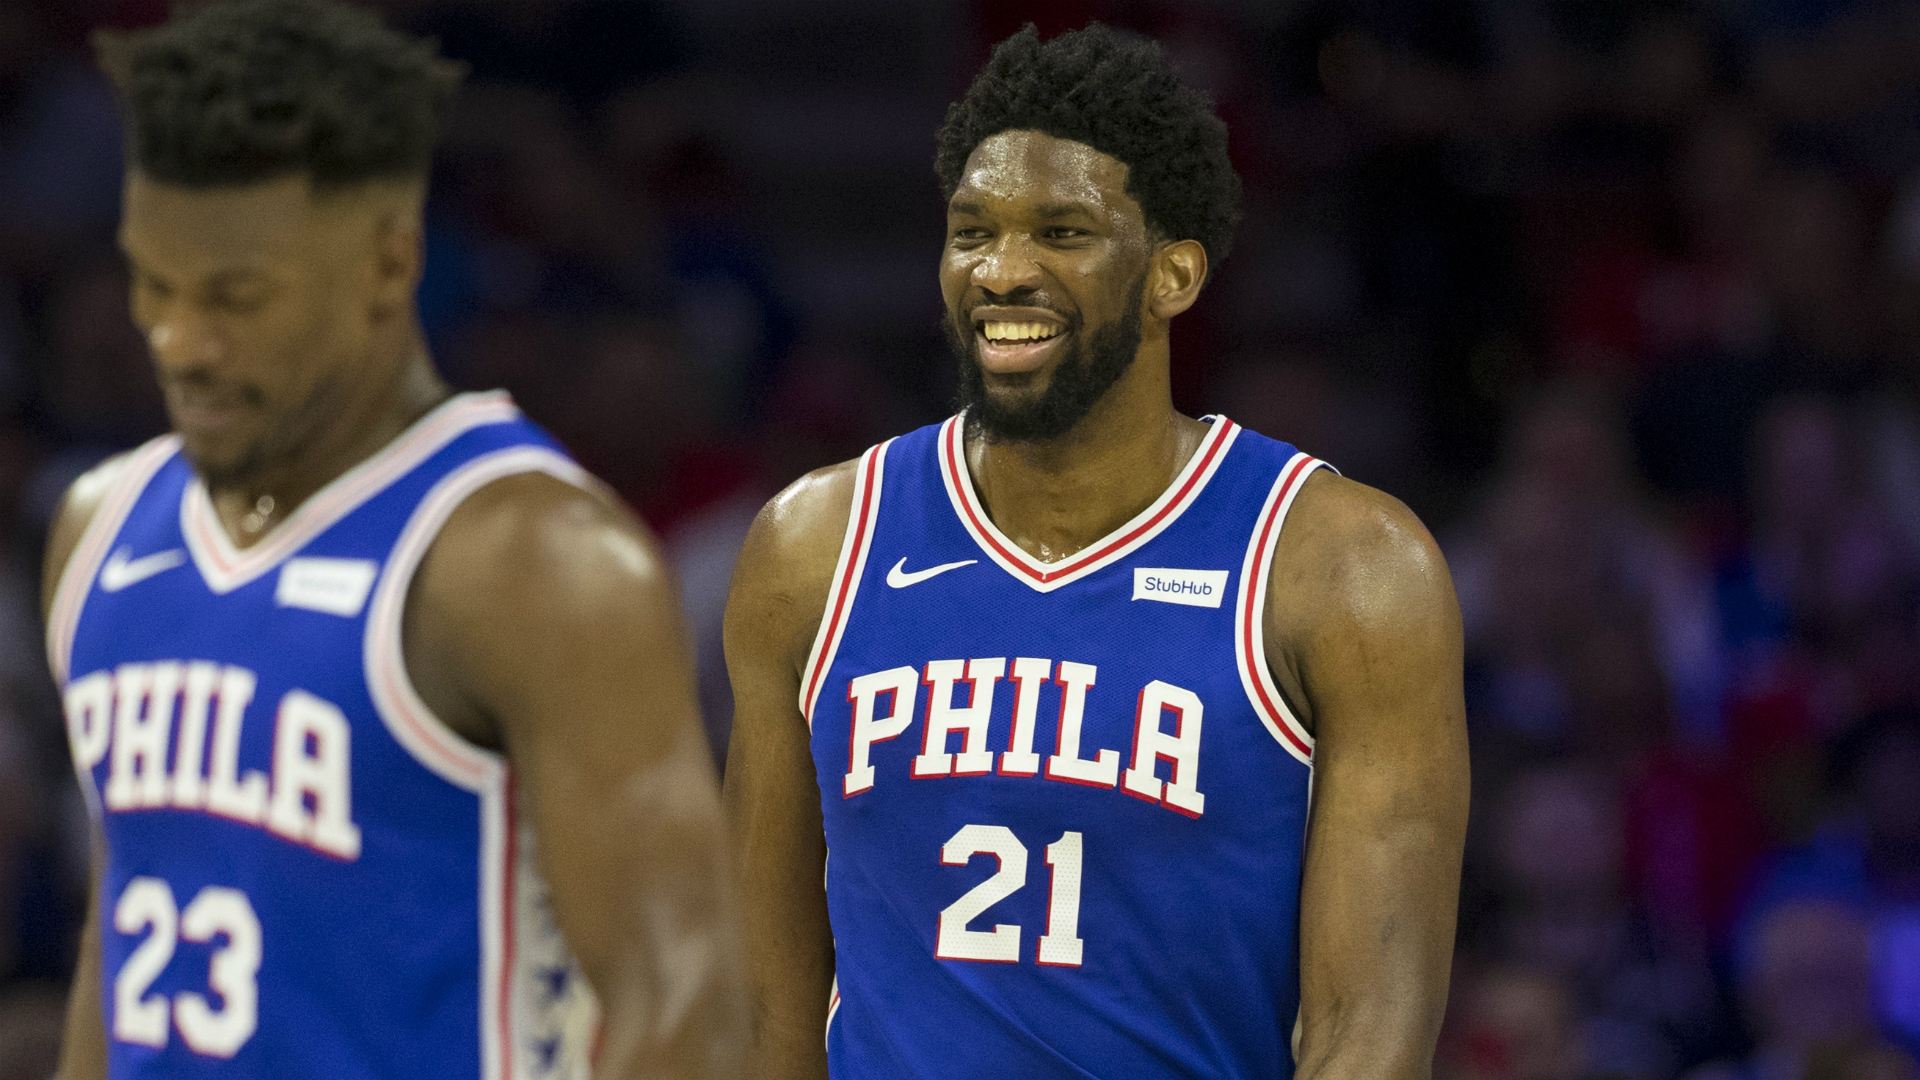 Philadelphia 76ers All-Star Joel Embiid